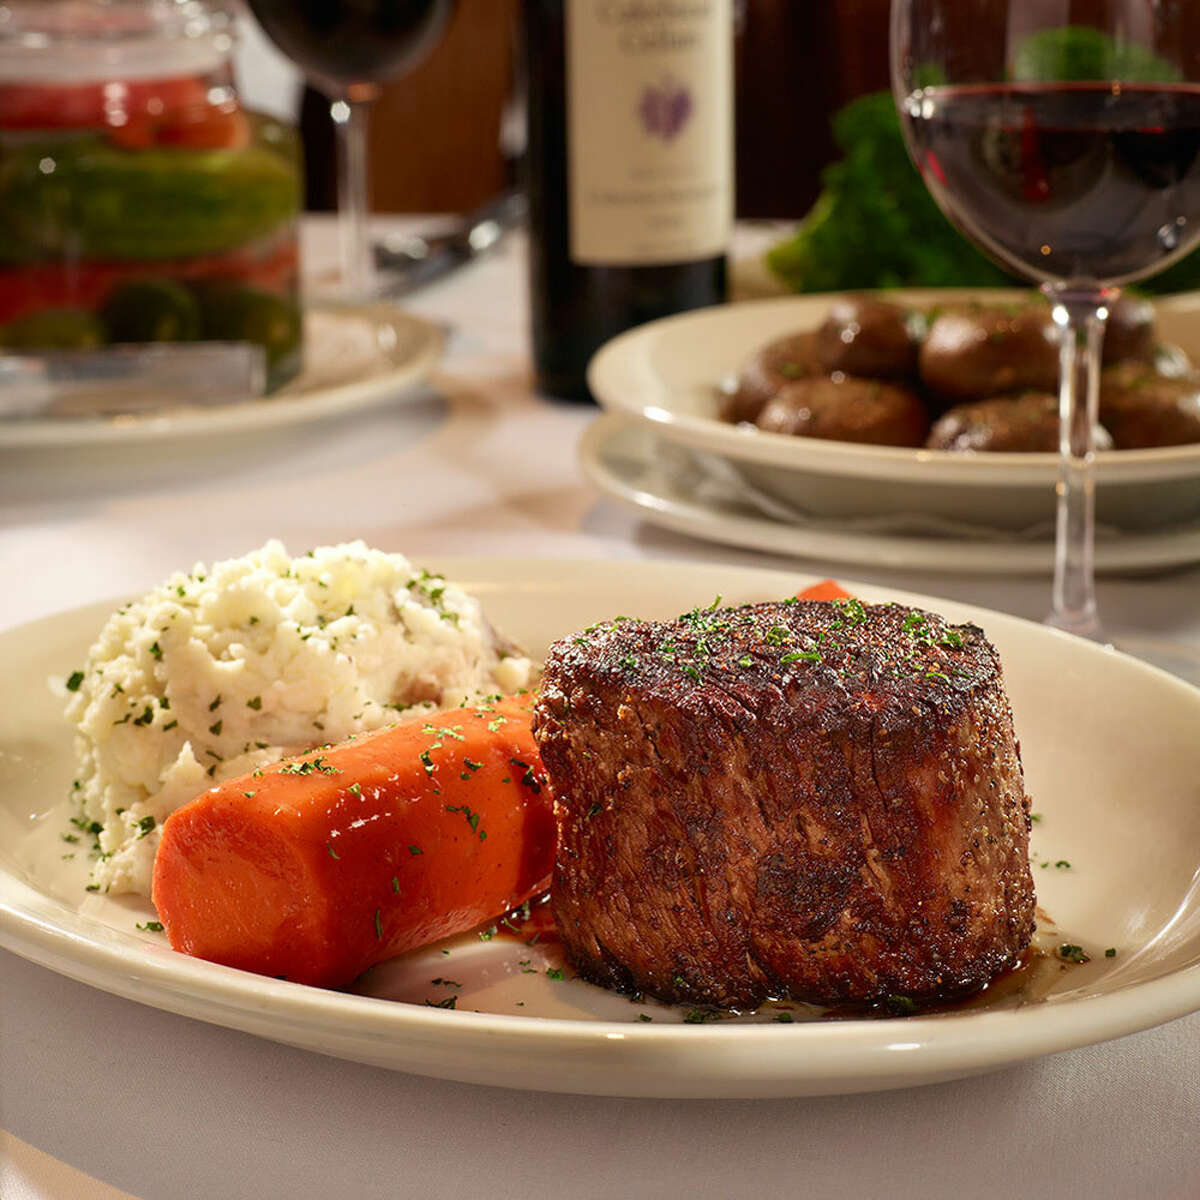 Bob's Steak & Chop House San Antonio*Received Best of Award of Excellence from Wine Spectator.